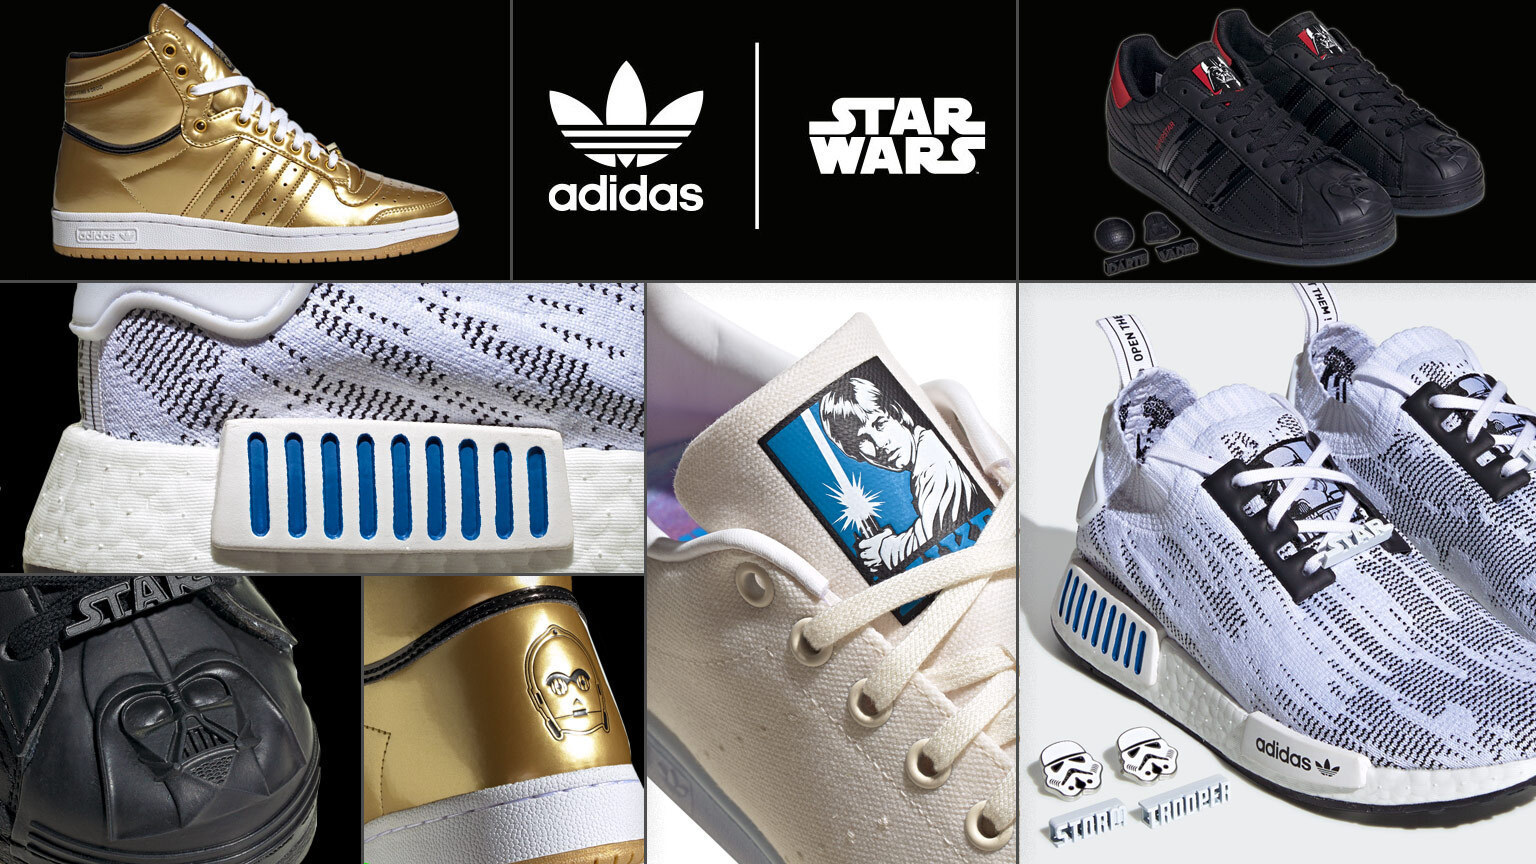 Adidas Brings Star Wars Style to its Sneaker Galaxy